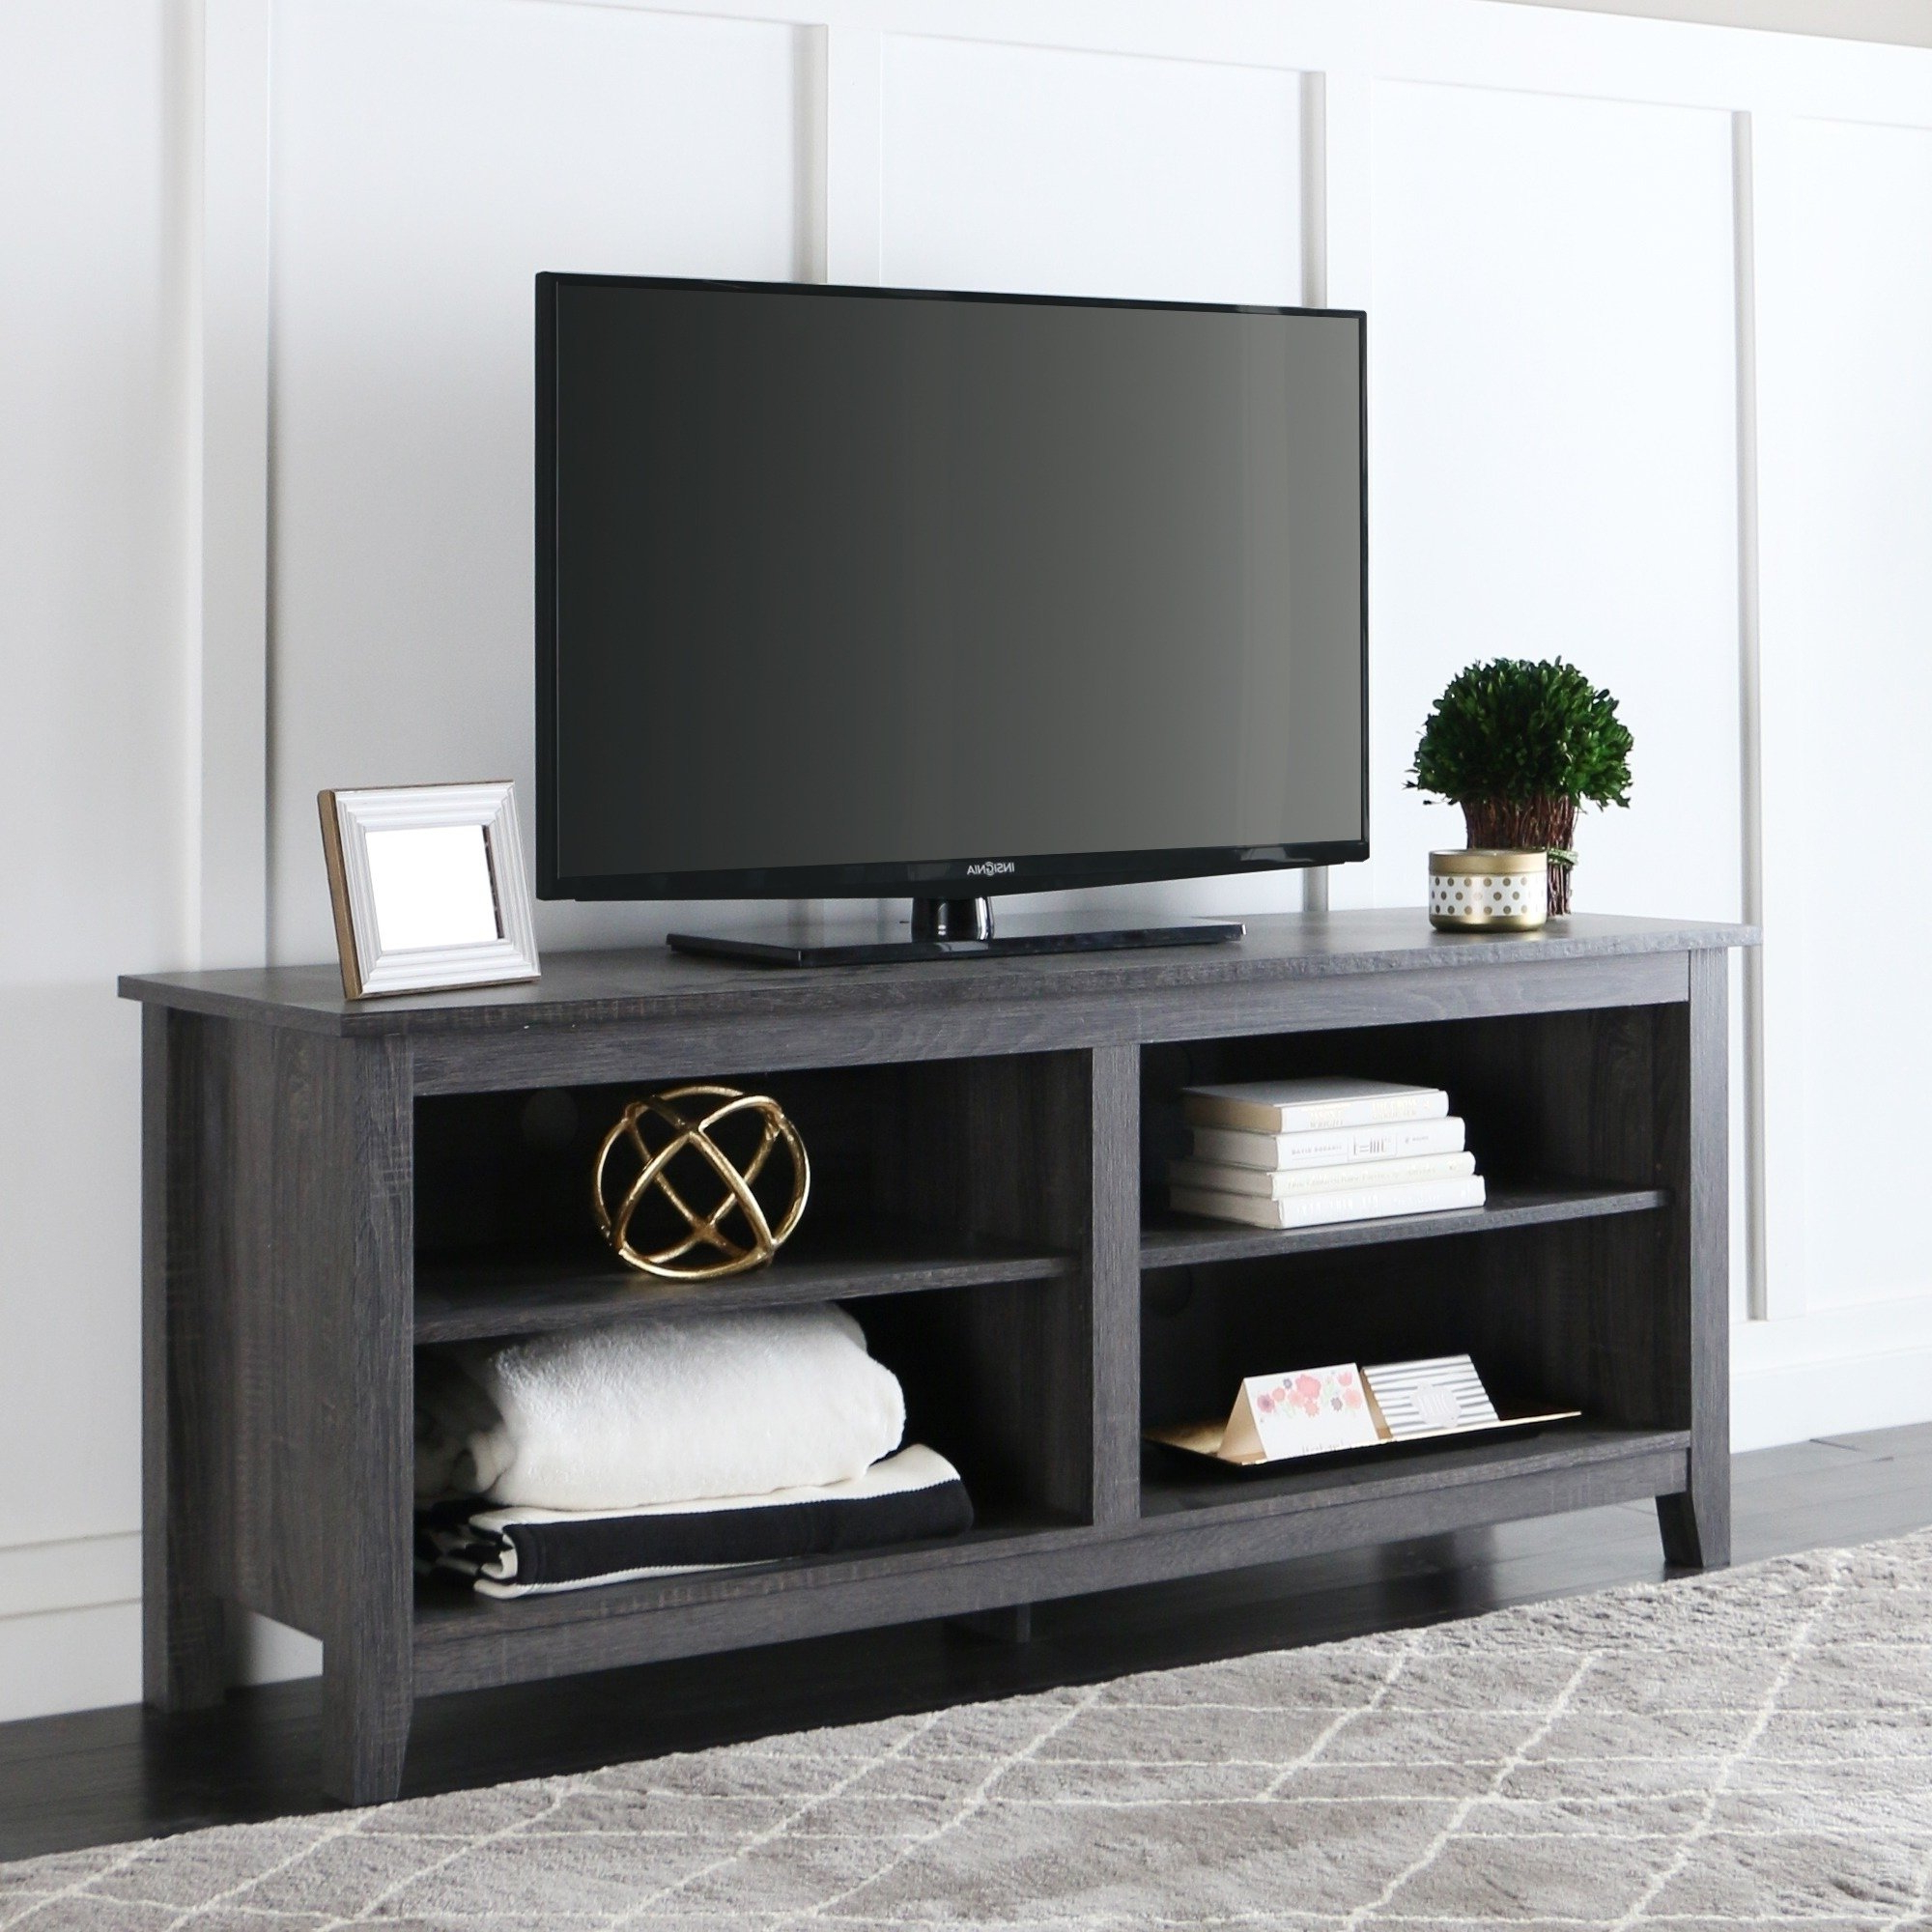 Grey Tv Stands Within Well Known Shop Porch & Den Harmony 58 Inch Wood Charcoal Grey Tv Stand – On (View 11 of 20)